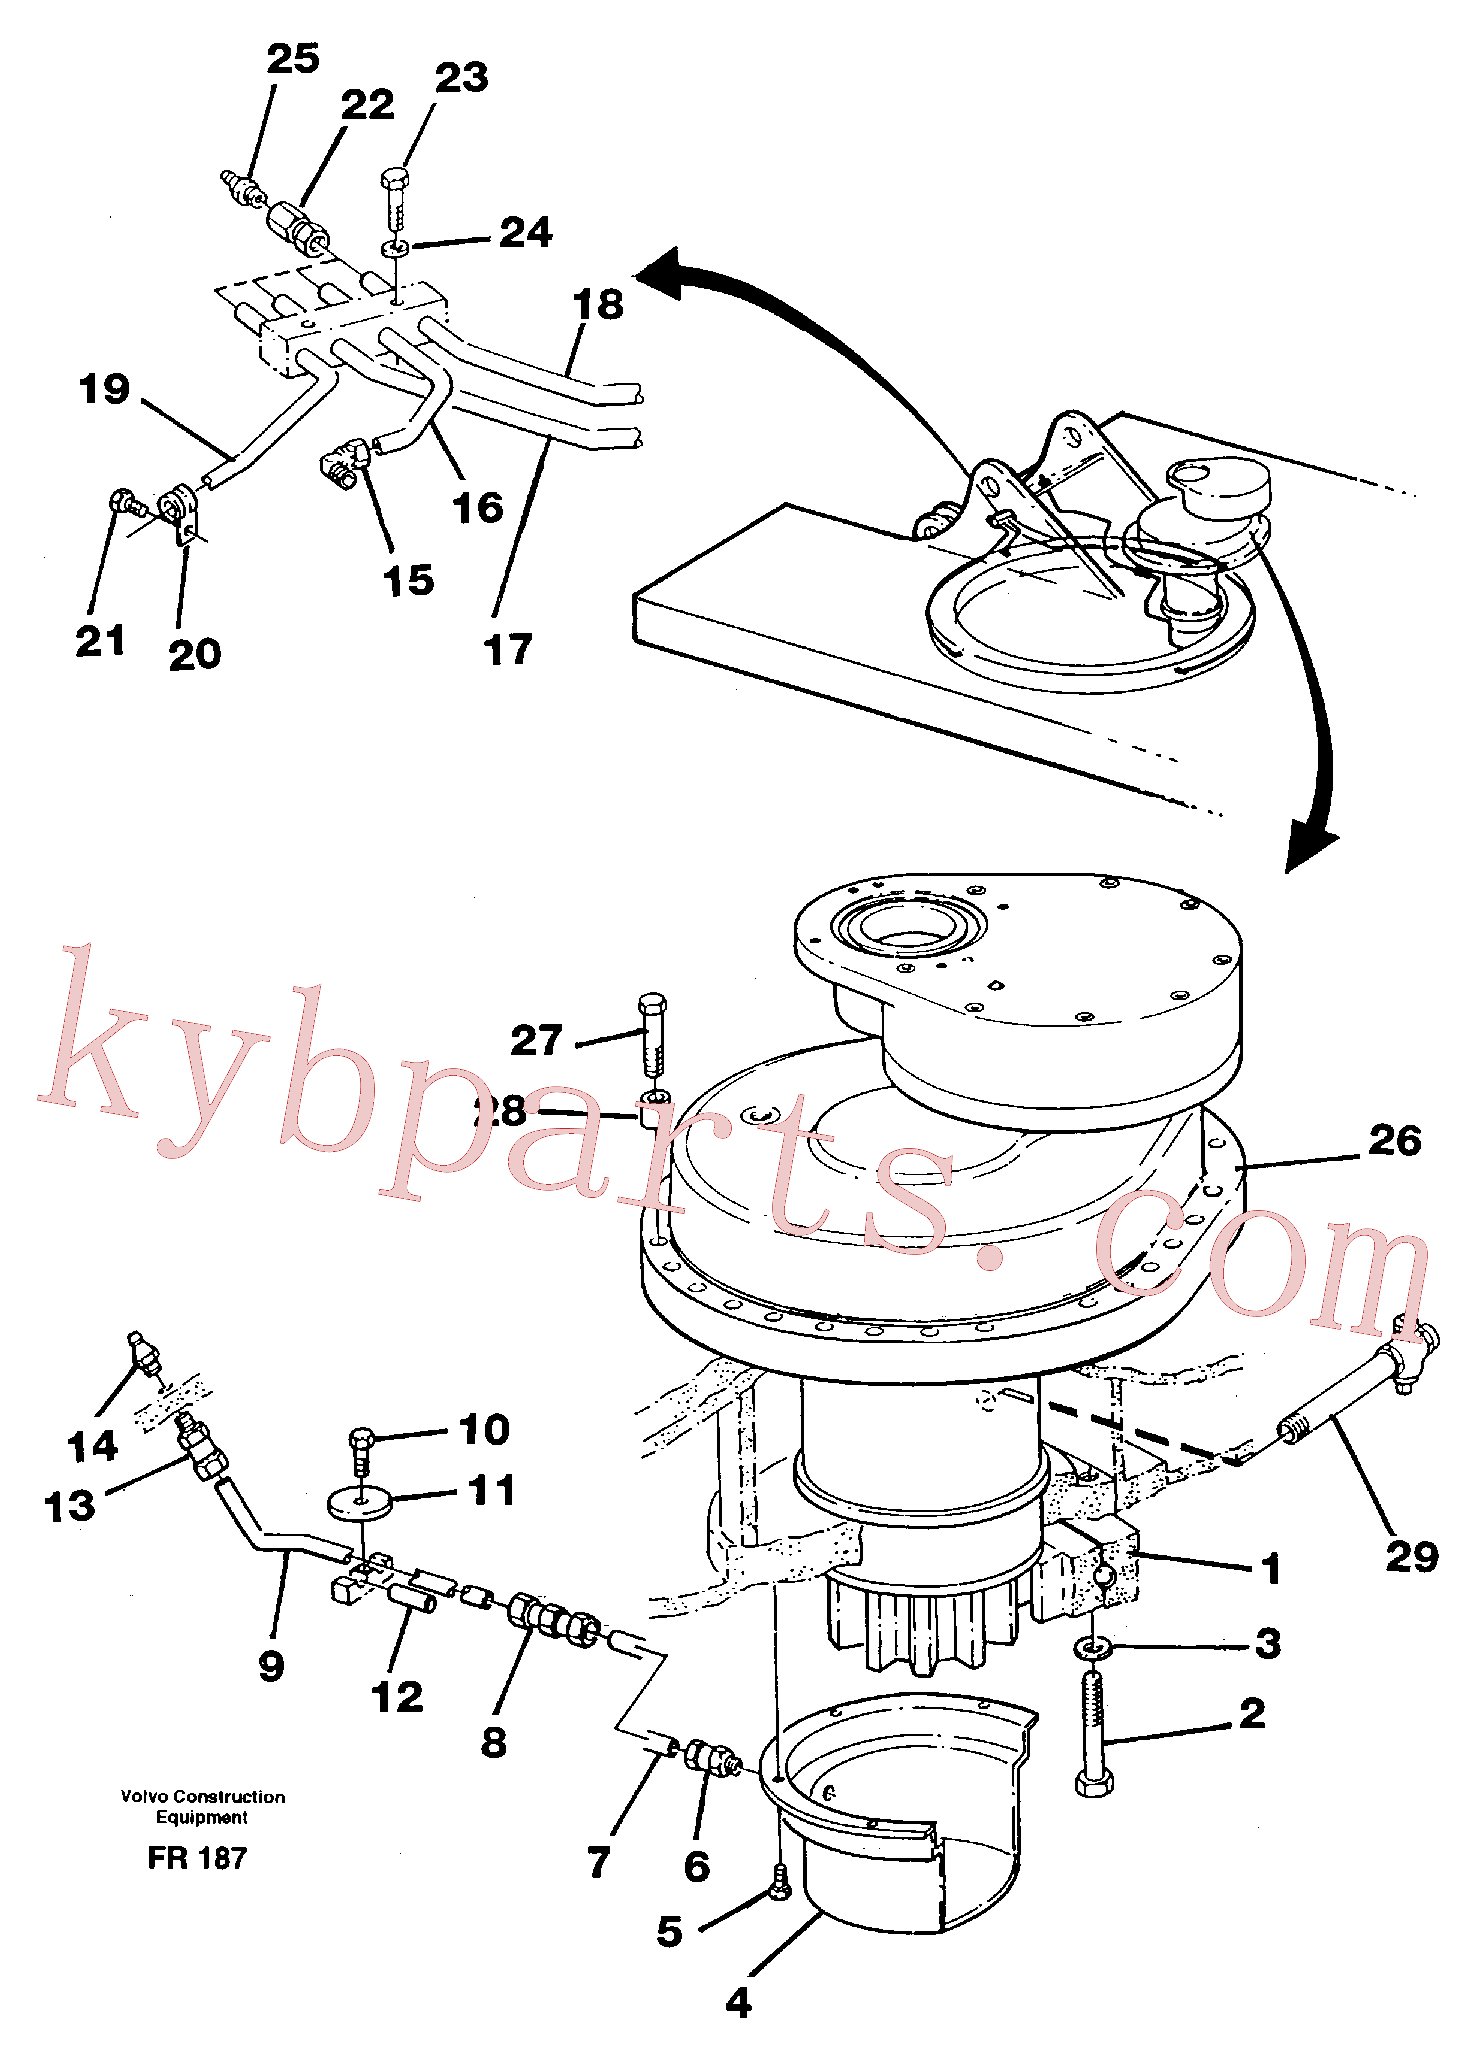 VOE14023285 for Volvo Superstructure with slew transmission(FR187 assembly)